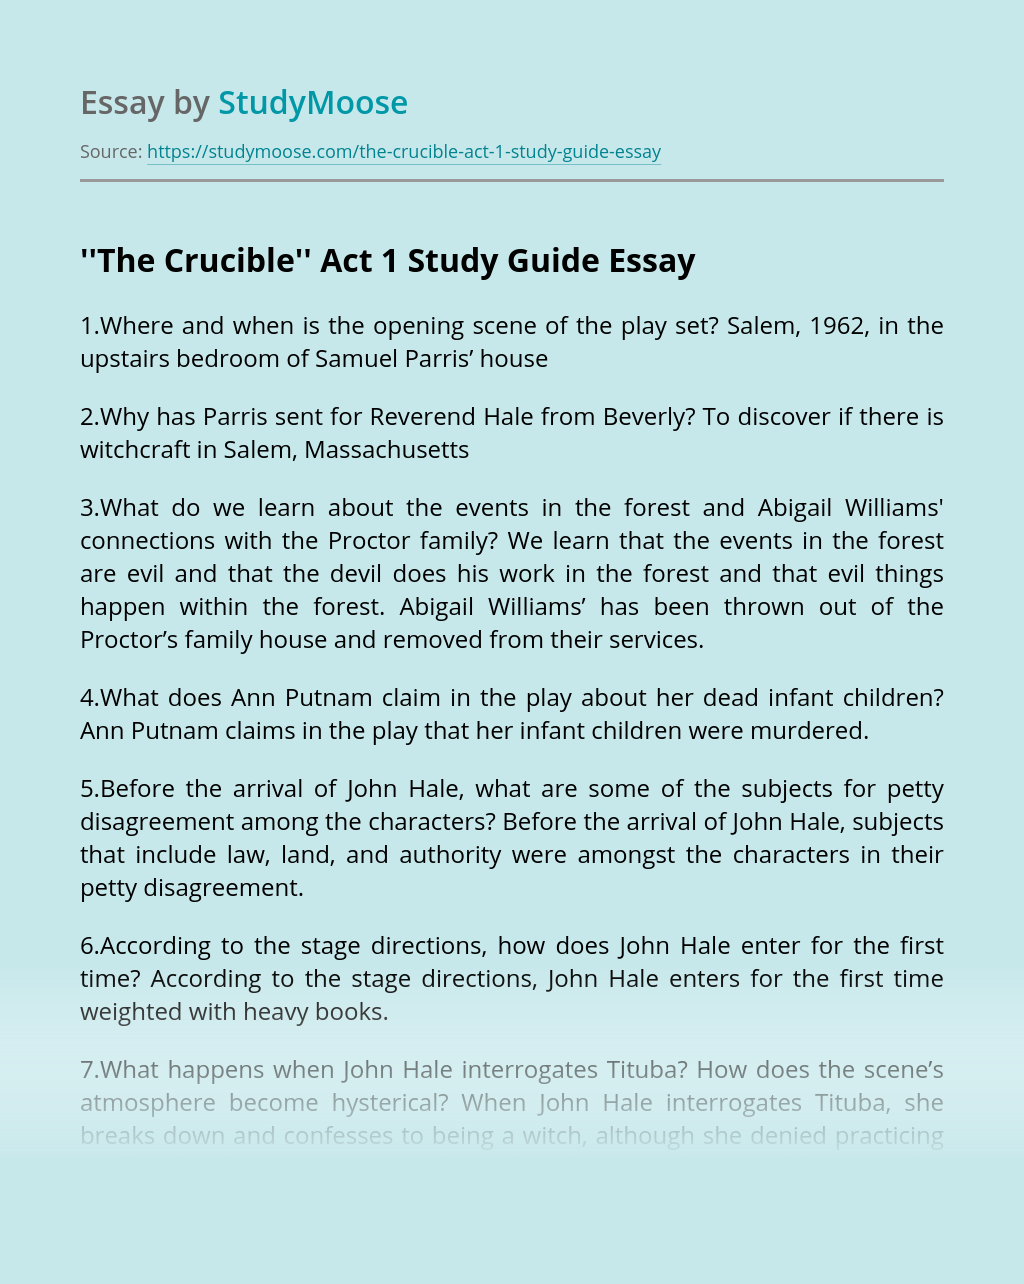 ''The Crucible'' Act 1 Study Guide